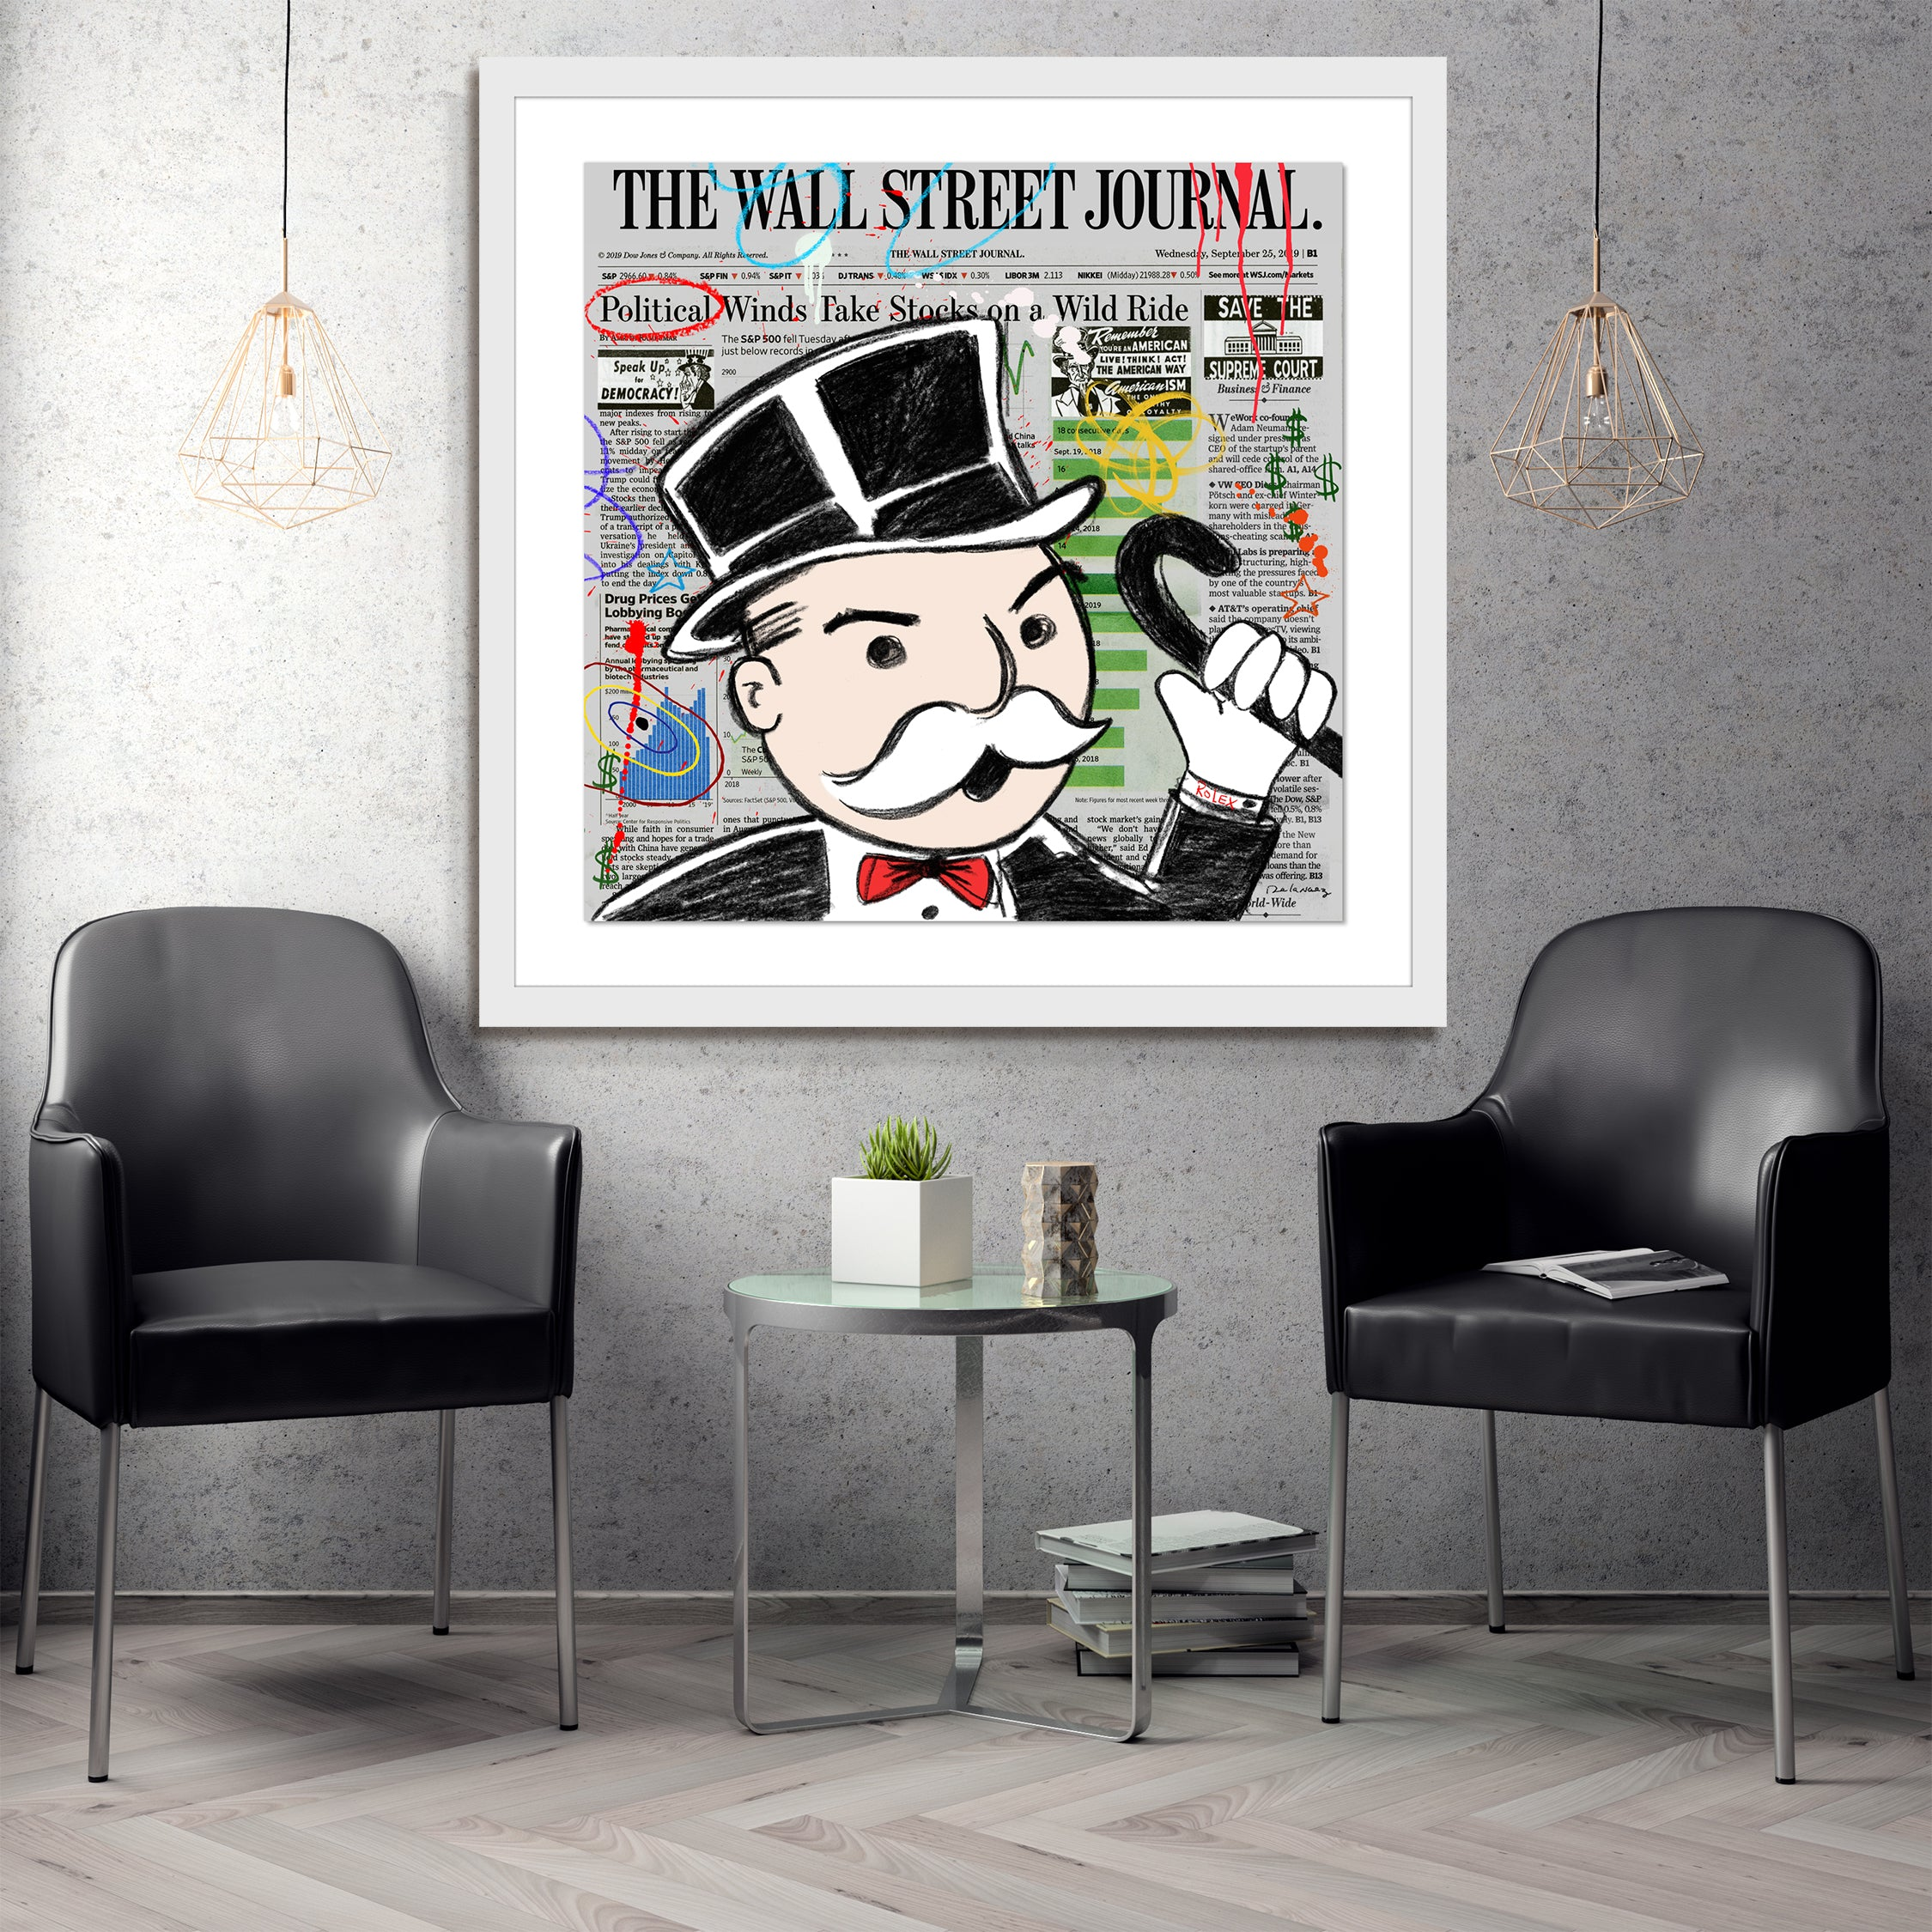 Wall Street Frenzy Nelson De La Nuez pop art stock market day trading finance monopoly banker